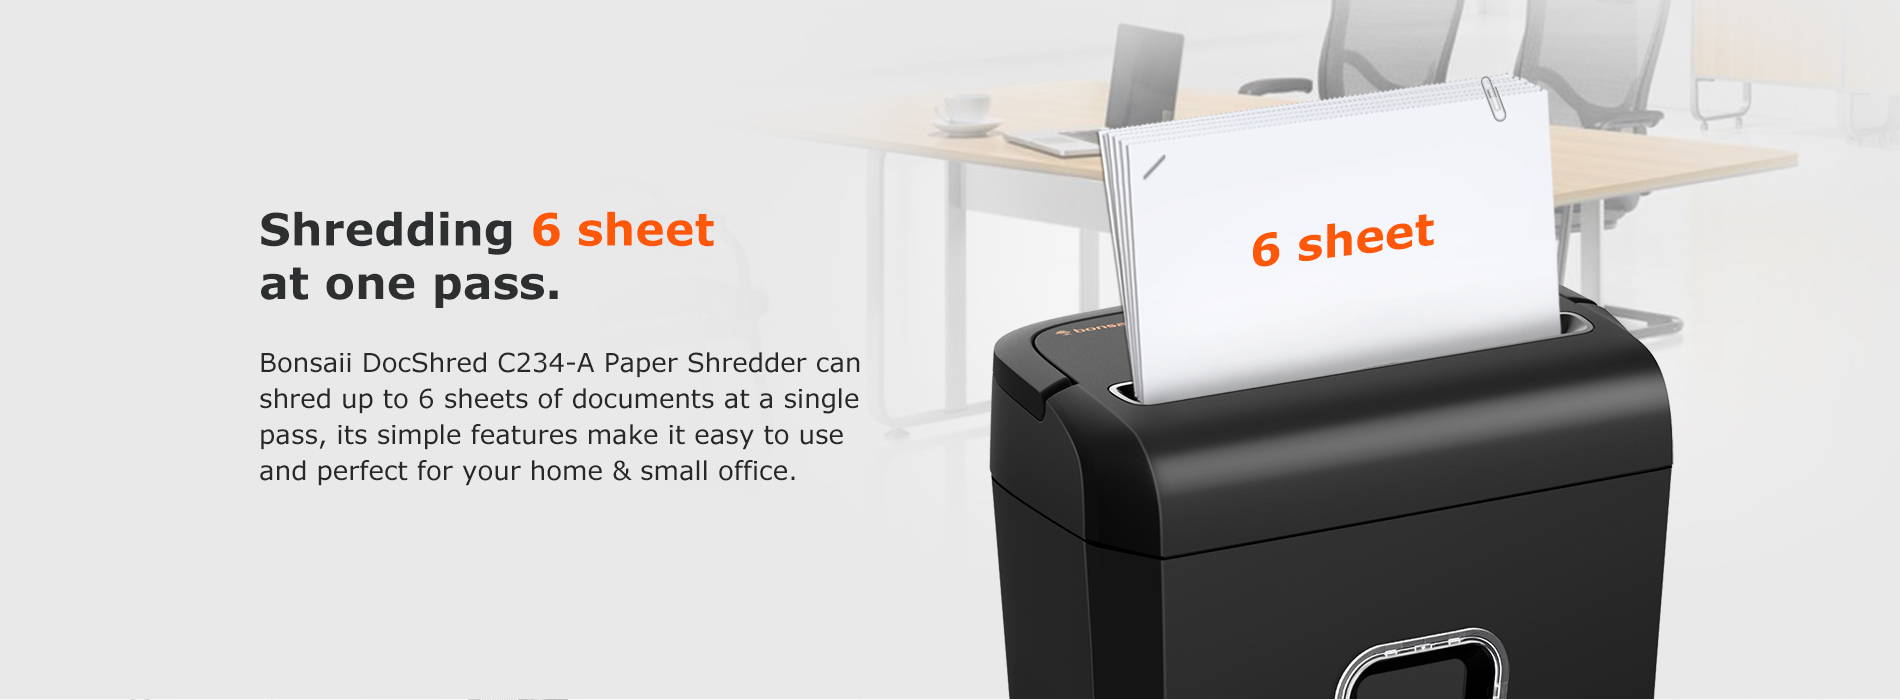 Shredding 6 sheet at one pass Bonsaii DocShred C234-A Paper Shredder can shred up to 6 sheets of documents at a single pass, its simple features make it easy to use and perfect for your home & small office.